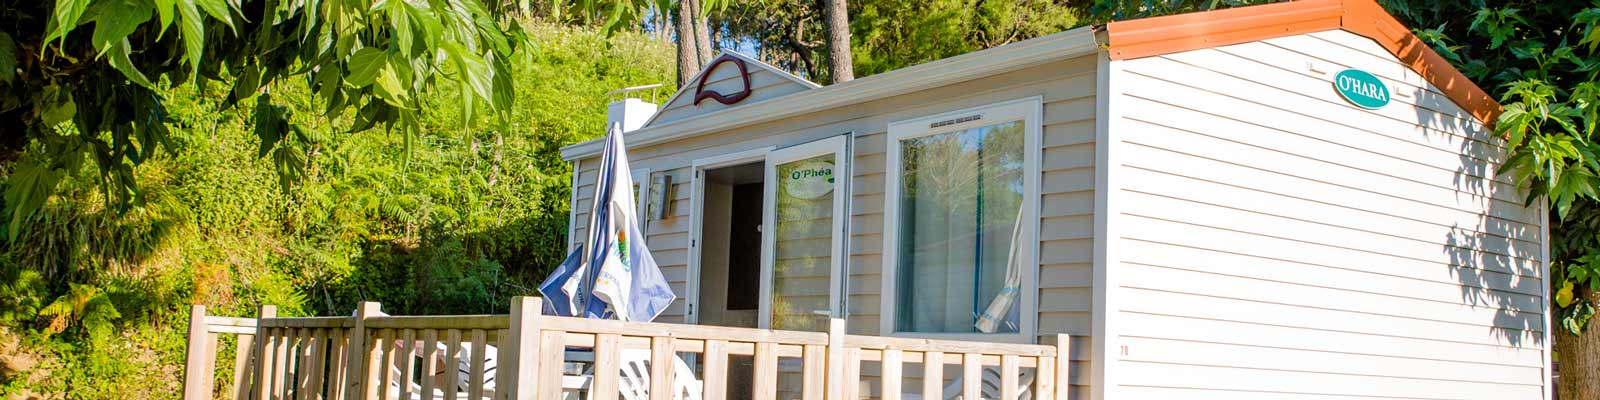 Location mobilhome 2 personnes pays basque